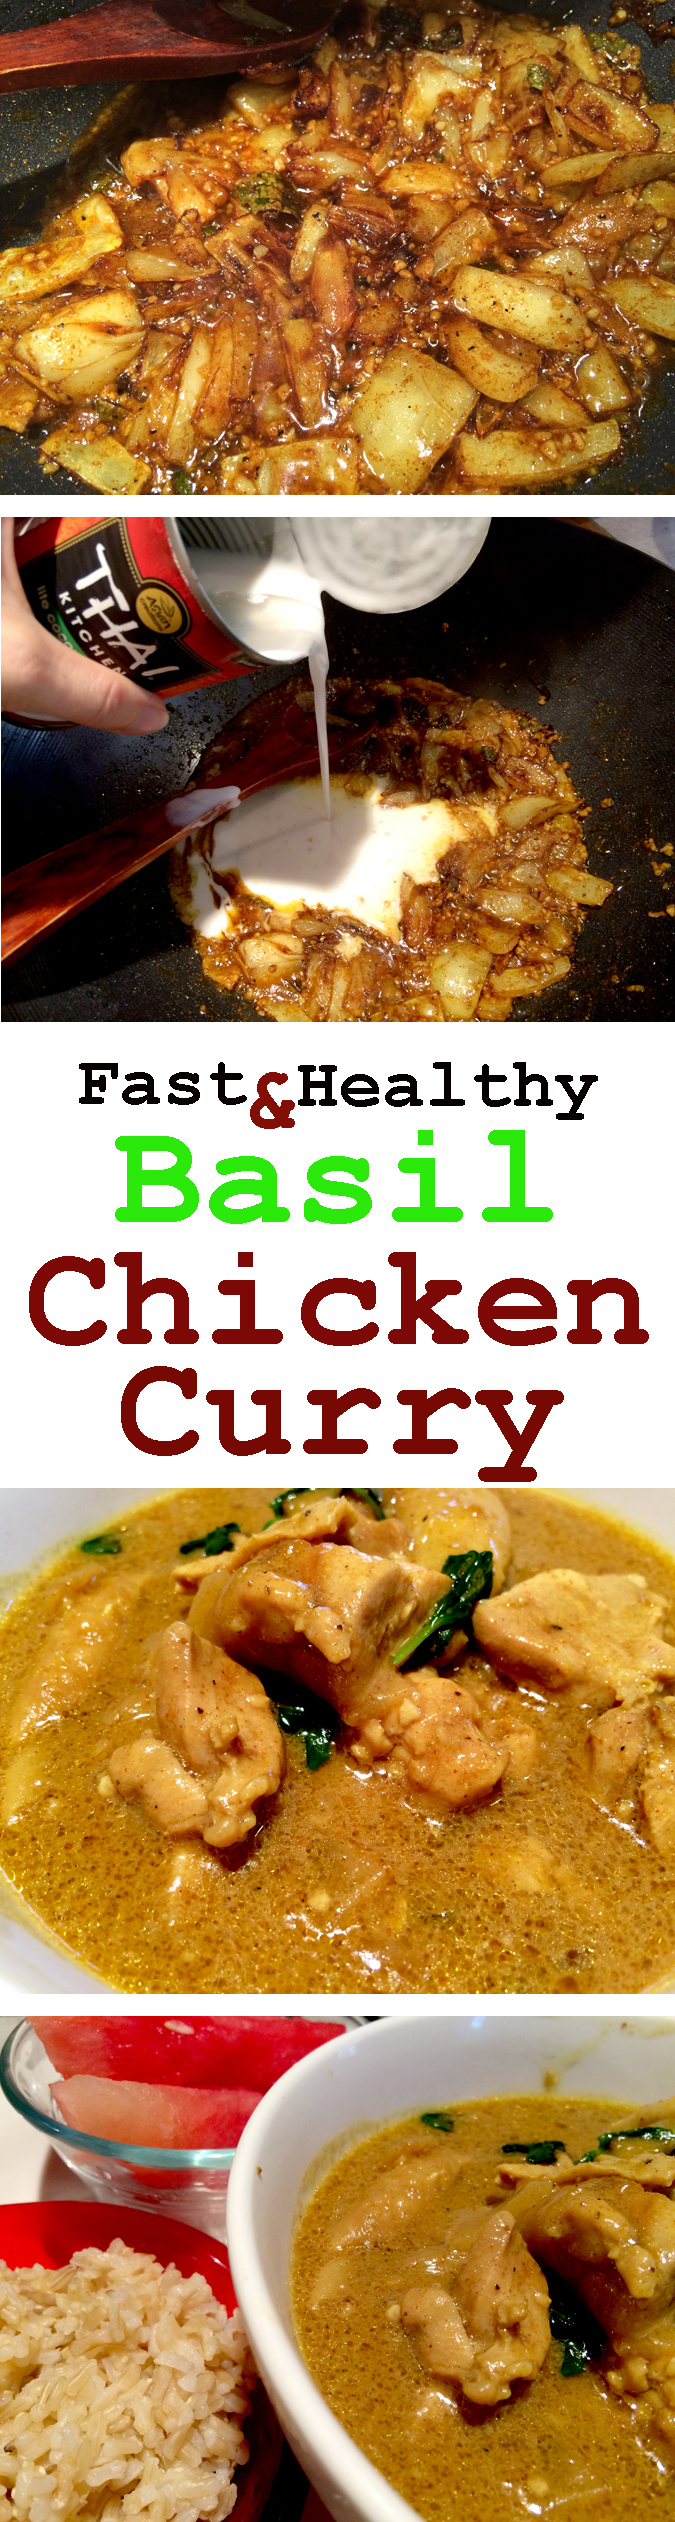 Fast & healthy basil chicken curry